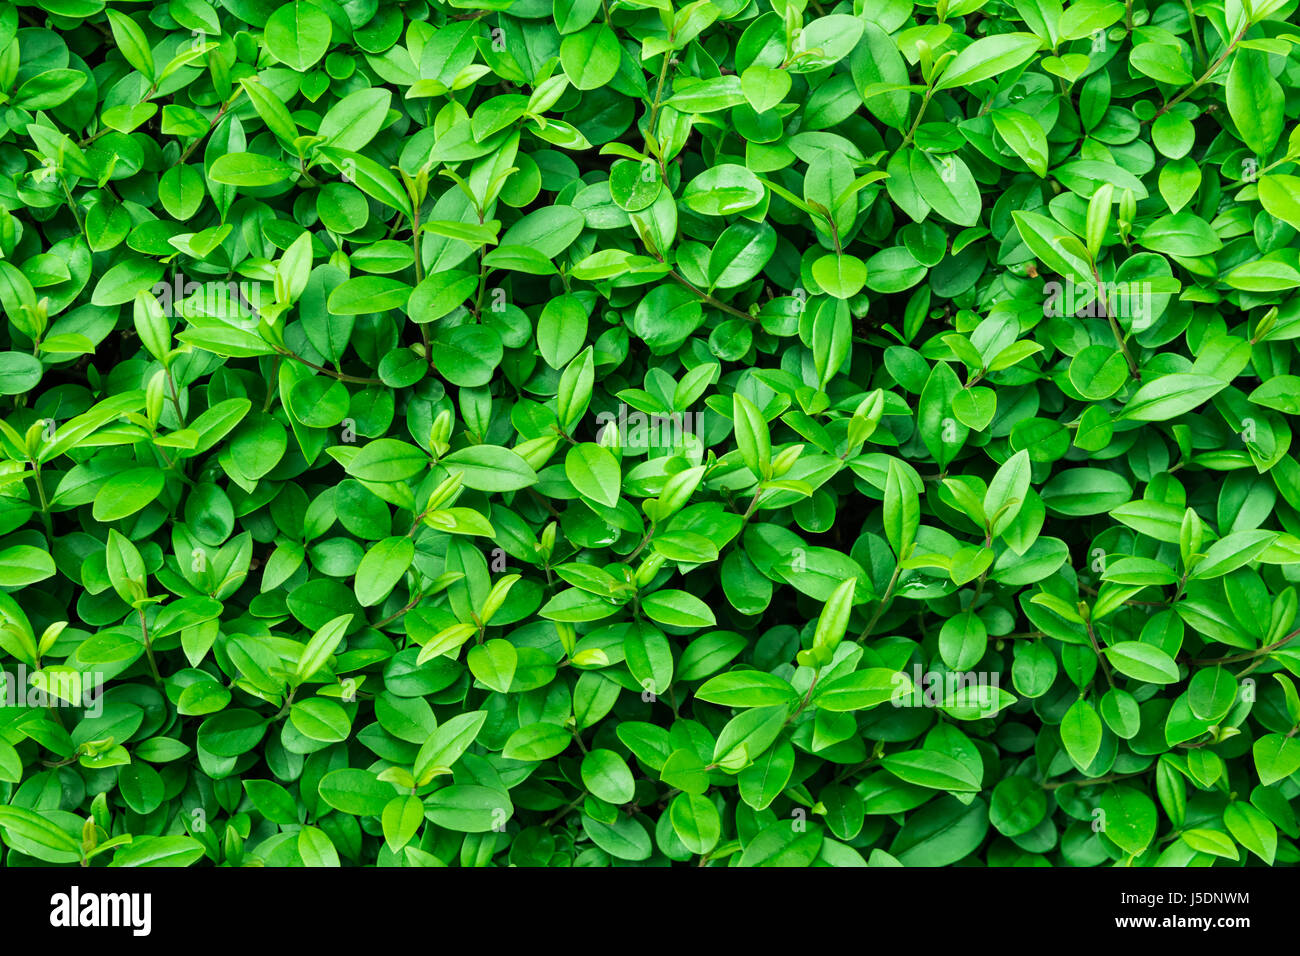 Green foliage background, leaf texture, bush, bright vibrant colors, seamless backdrop template, summer, spring, - Stock Image